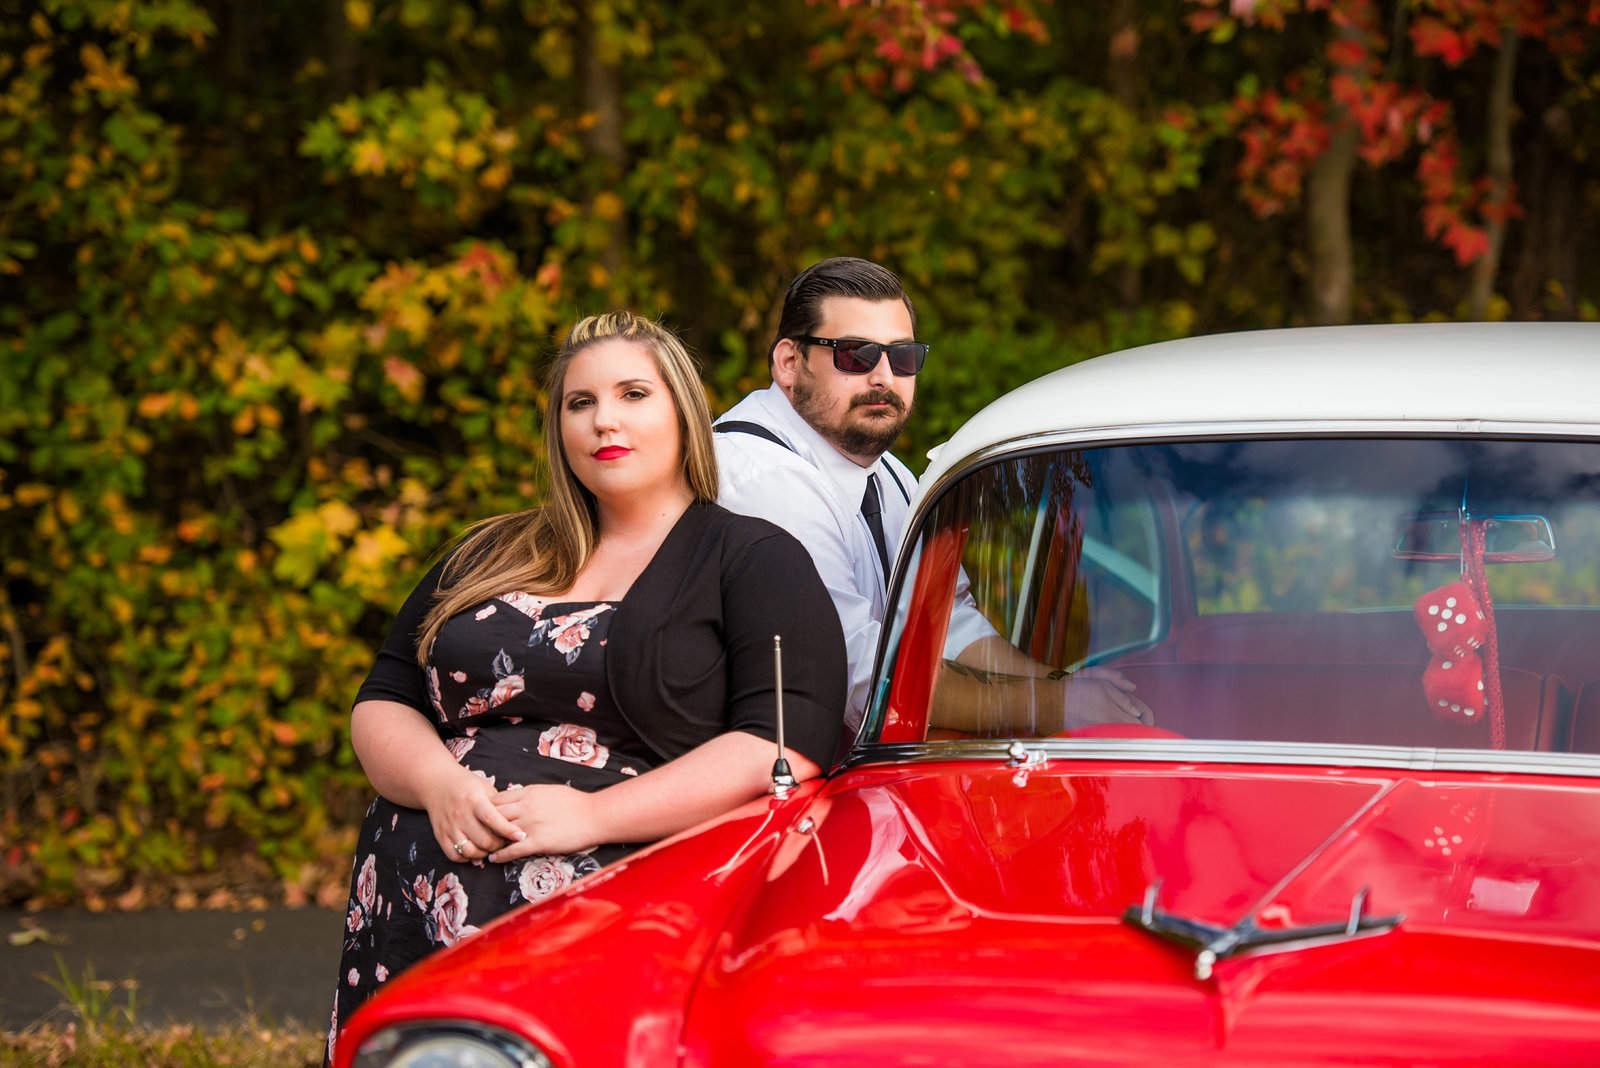 Retro_Pinup_Car_engagement_session_Nj088